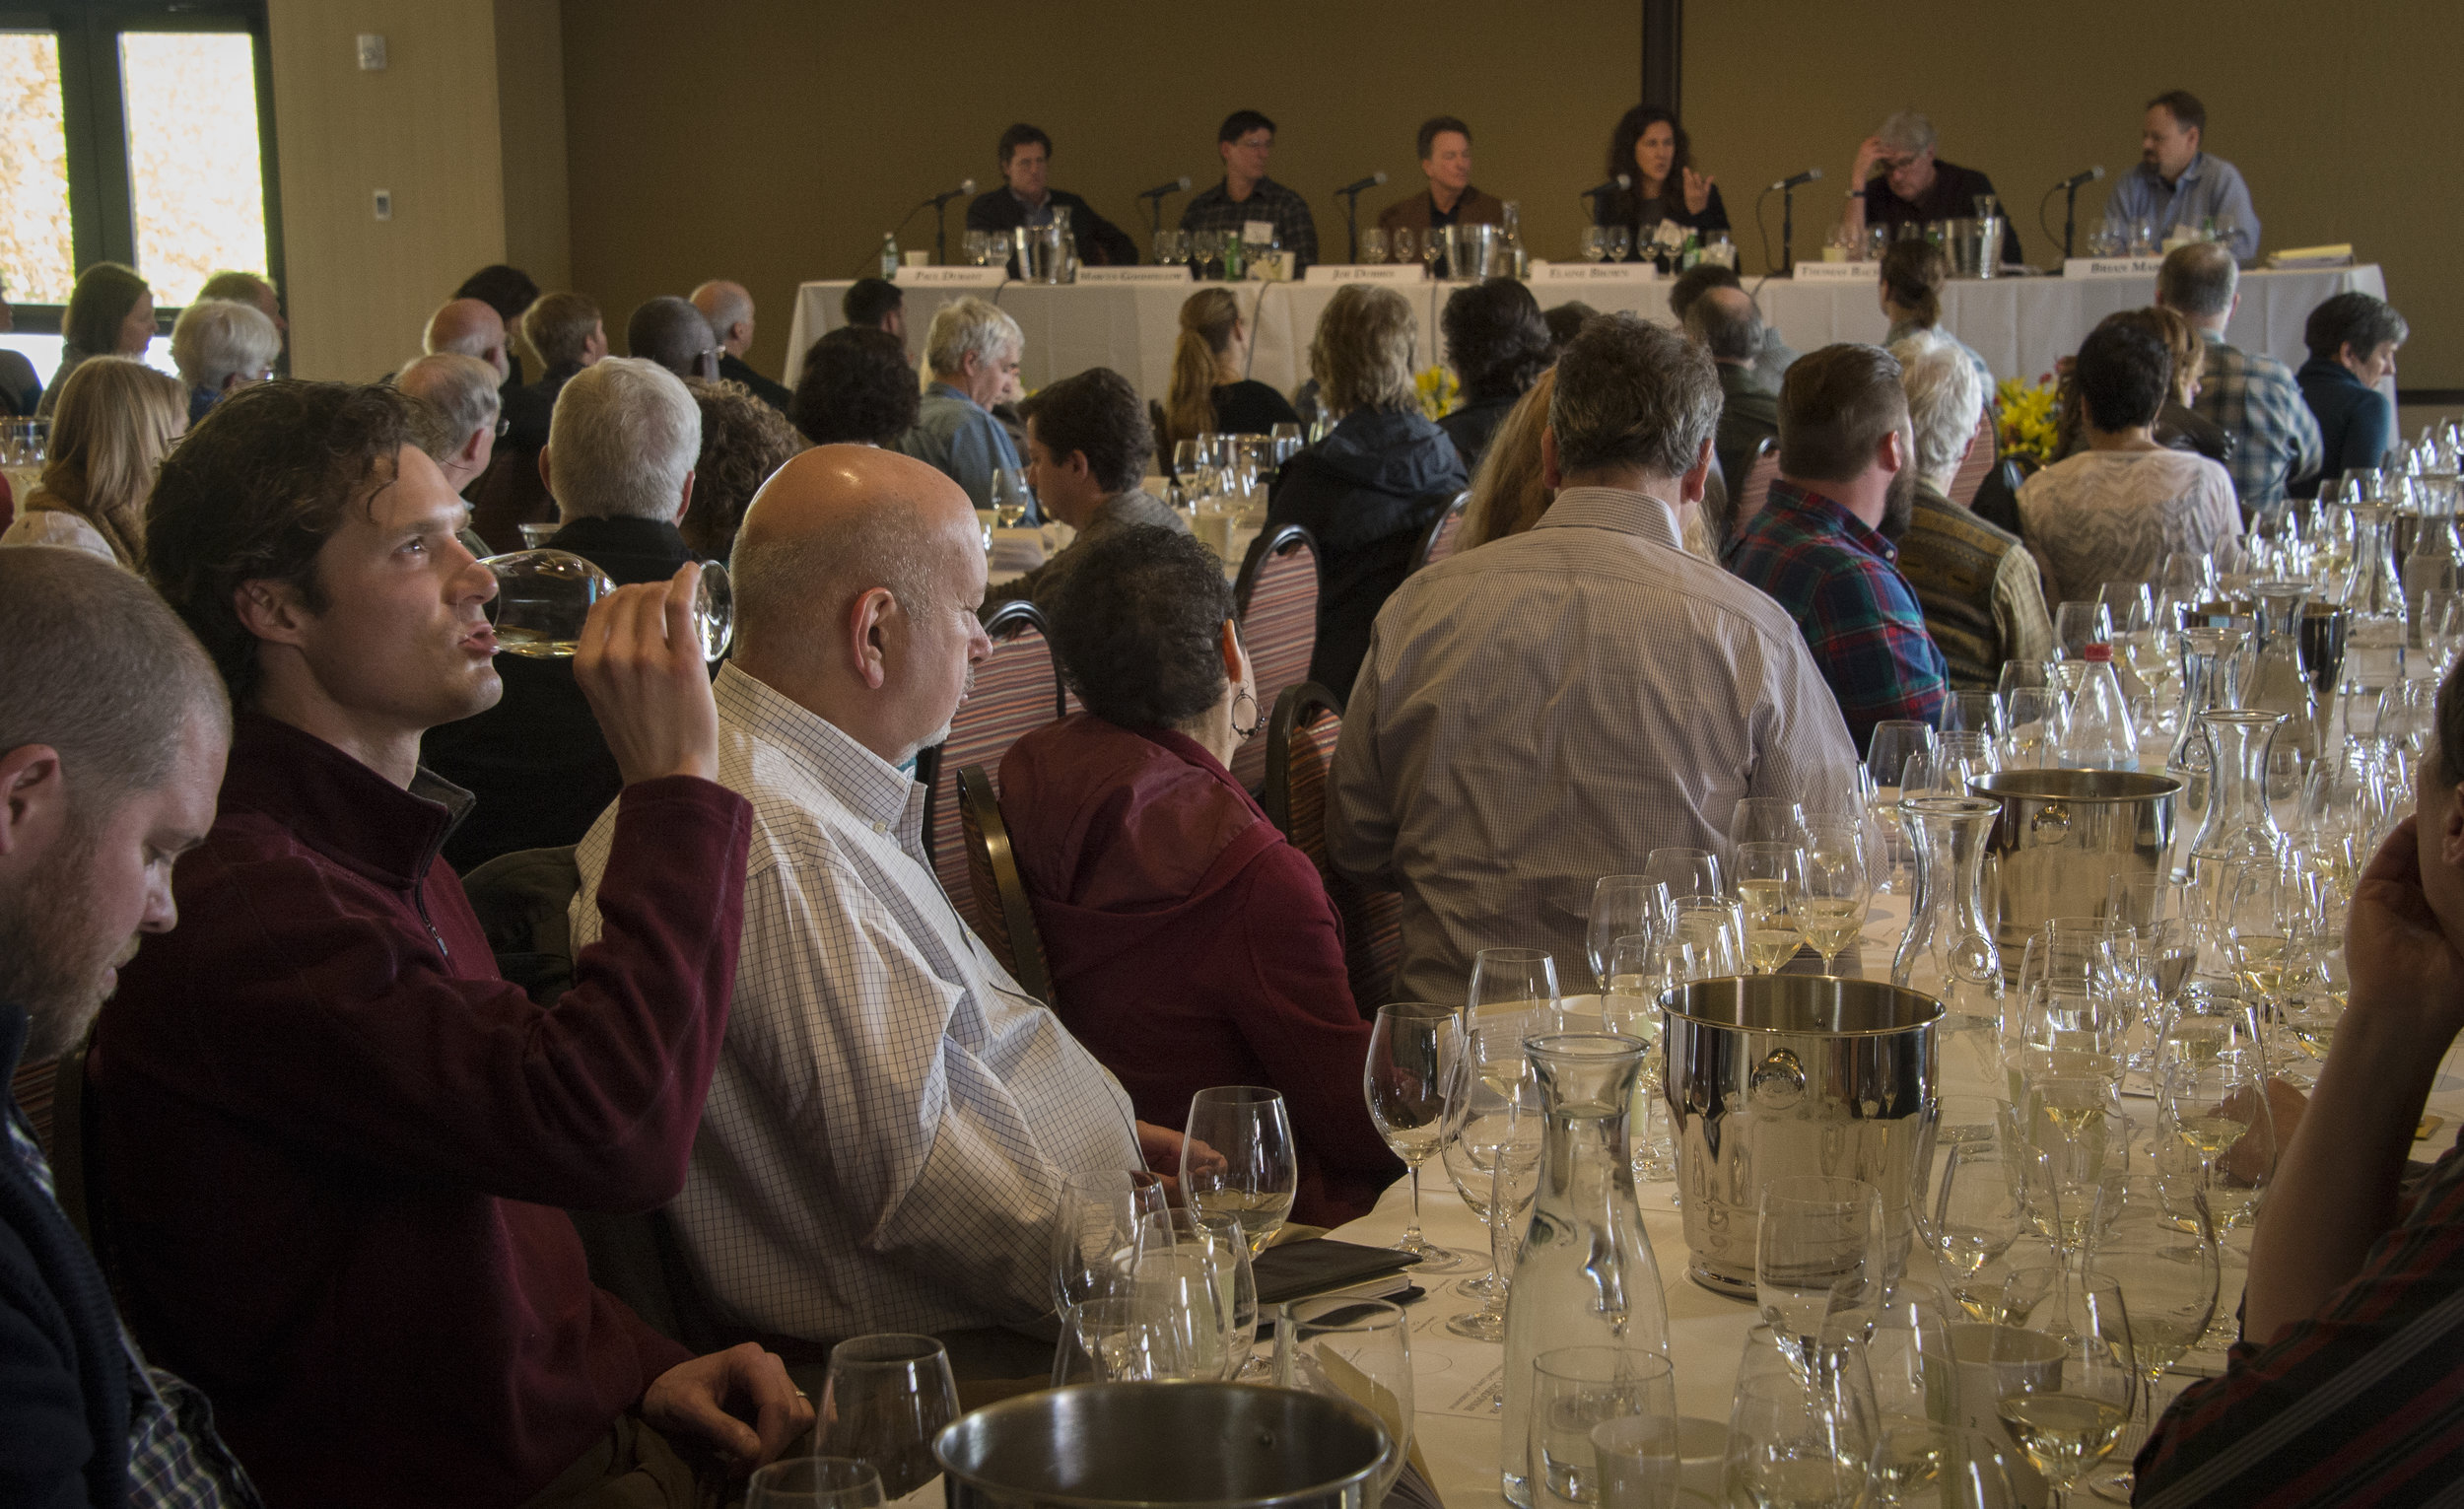 At the 5th Annual Oregon Chardonnay Celebration, winemakers and serious consumers were led in a tasting of five different chardonnay styles by a panel of Willamette Valley vineyard owners and winemakers. ©Andrea Johnson Photography